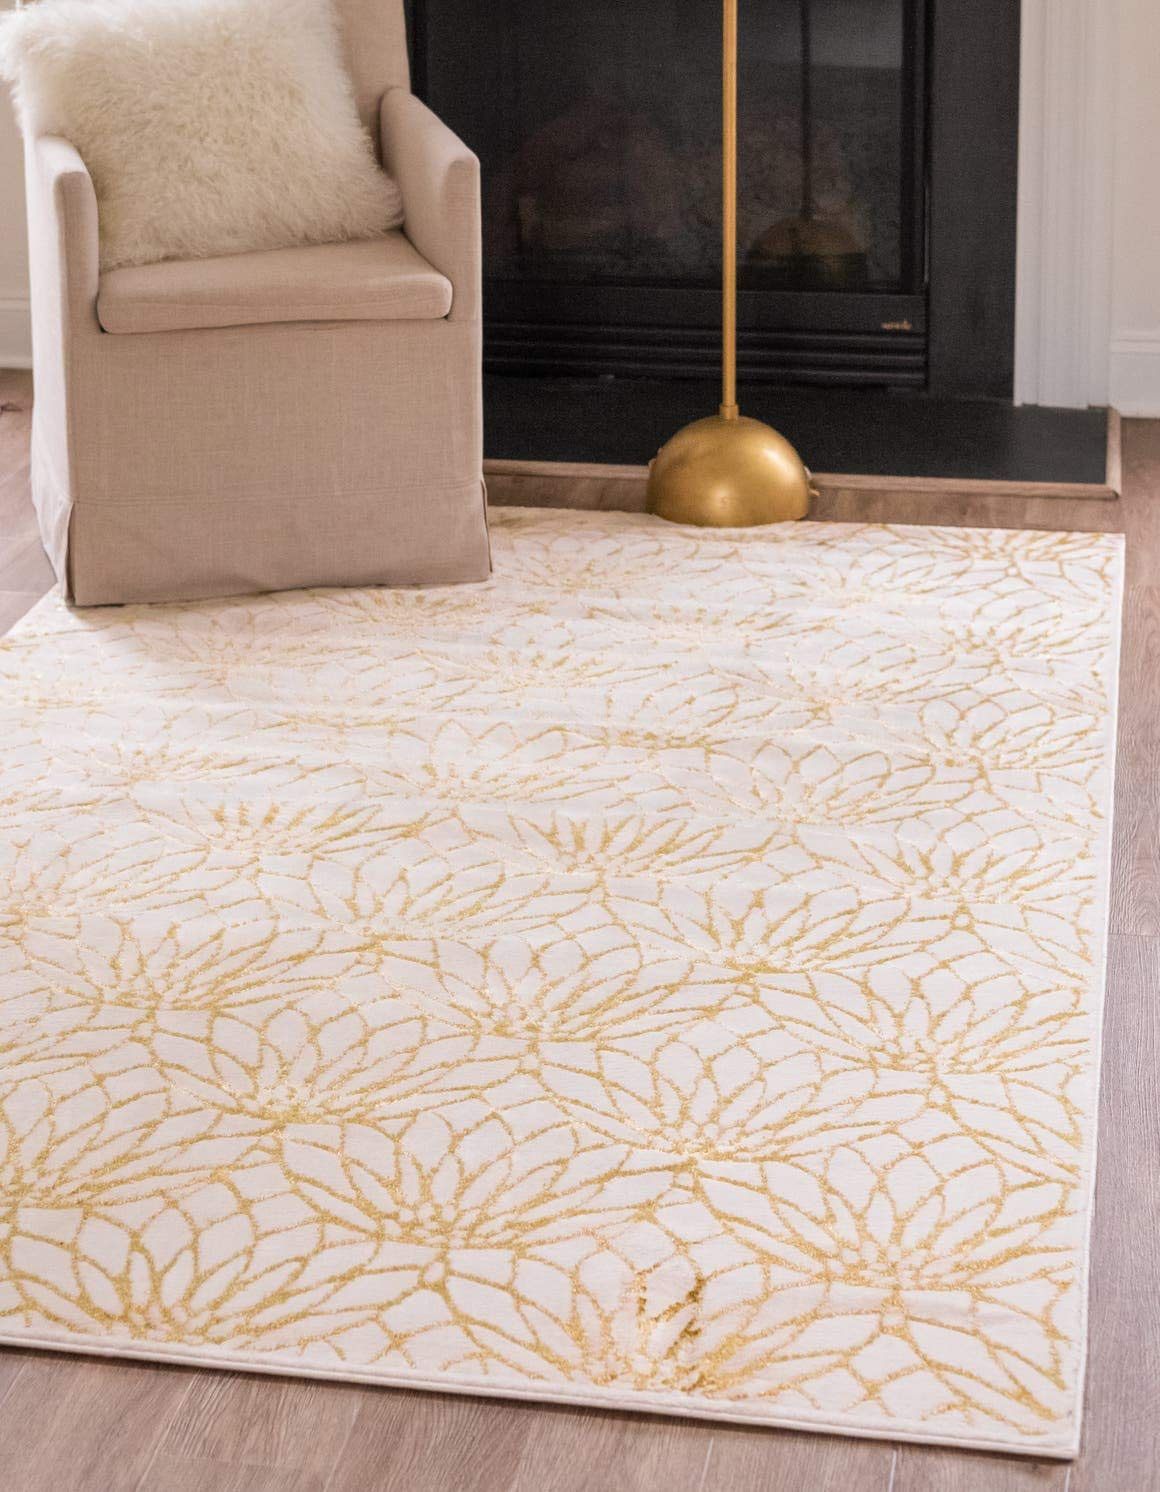 Unique Loom Marilyn Monroe Glam Collection Textured Lotus Floral White Gold Area Rug 4 0 x 6 0